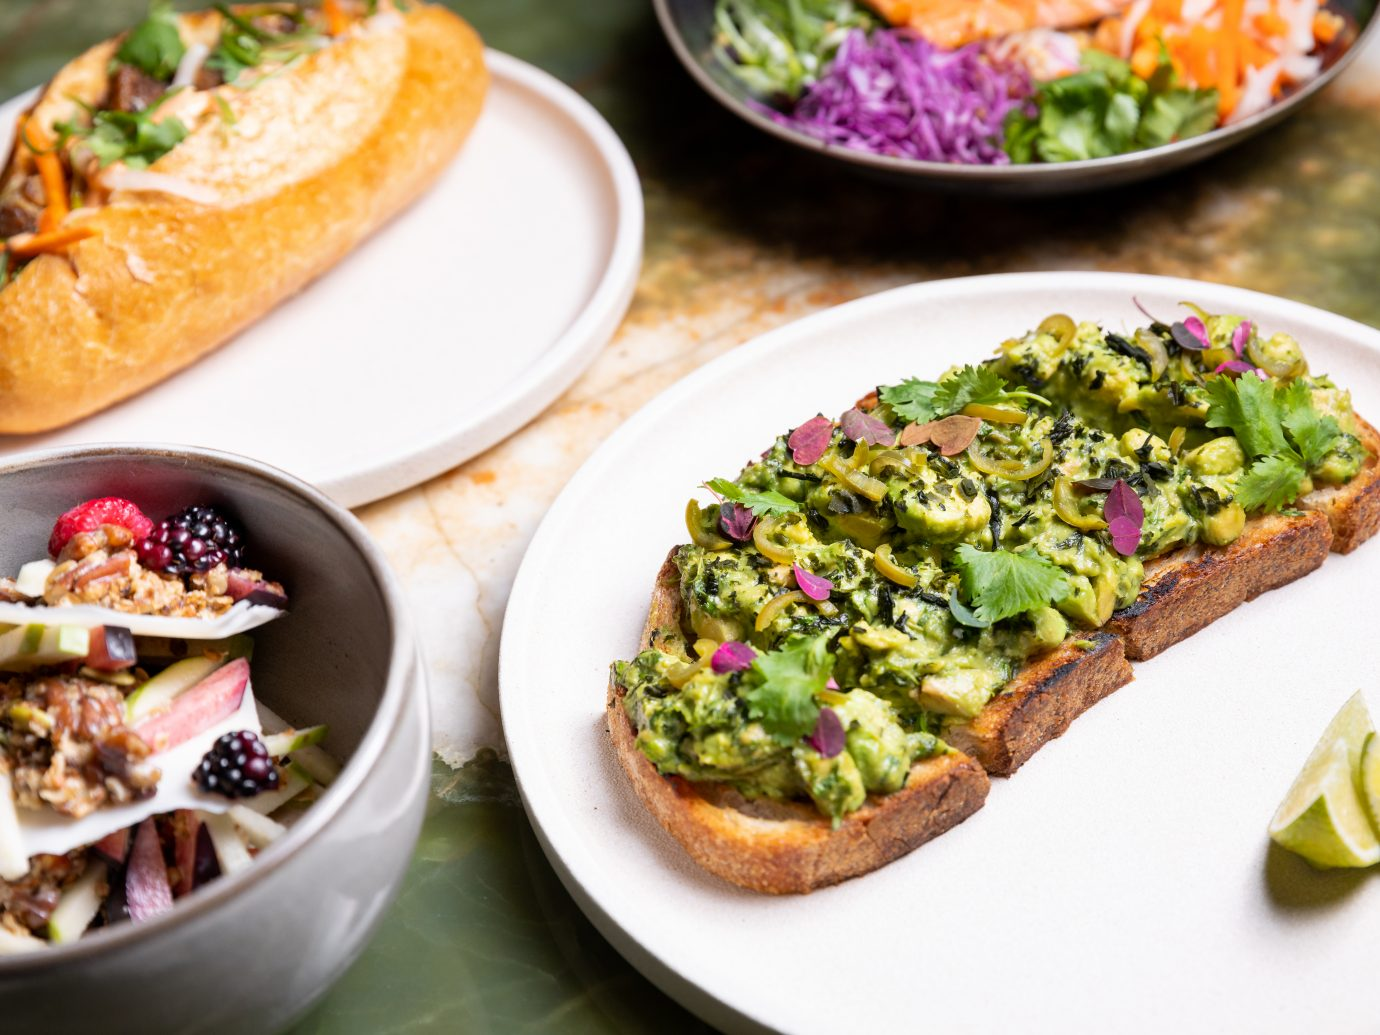 Brunch dishes from L.P.